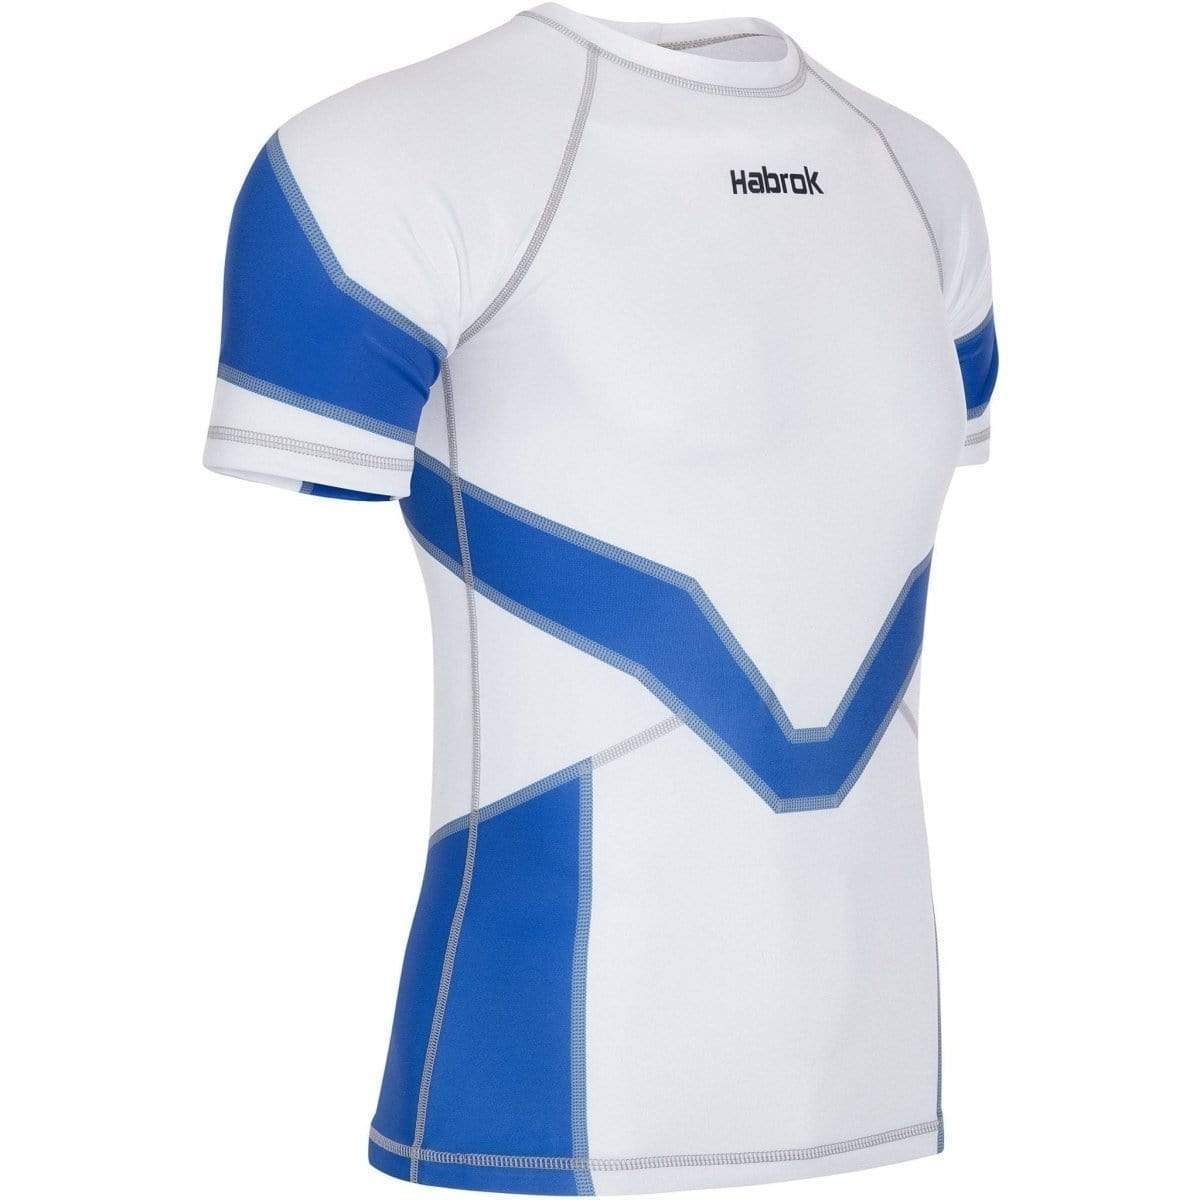 Habrok Rash Guard XS / BLUE Transform 2.0 | Ranked Rash Guard Women | Half Sleeve